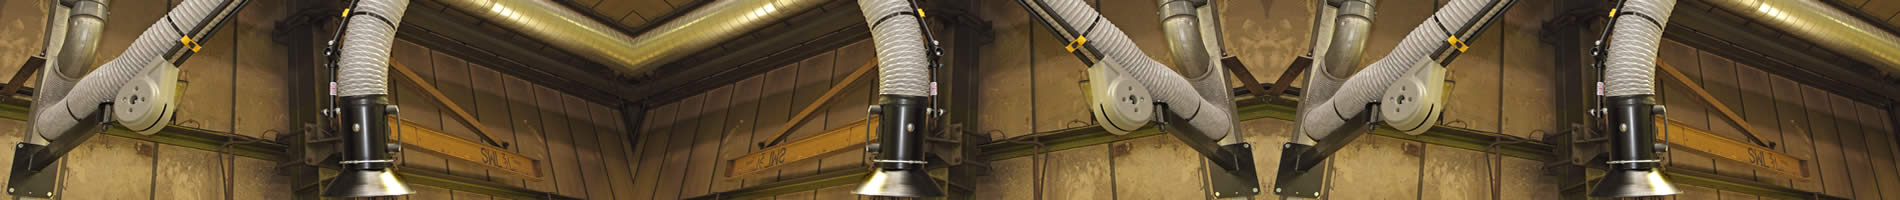 Dust Control and Fume Extraction